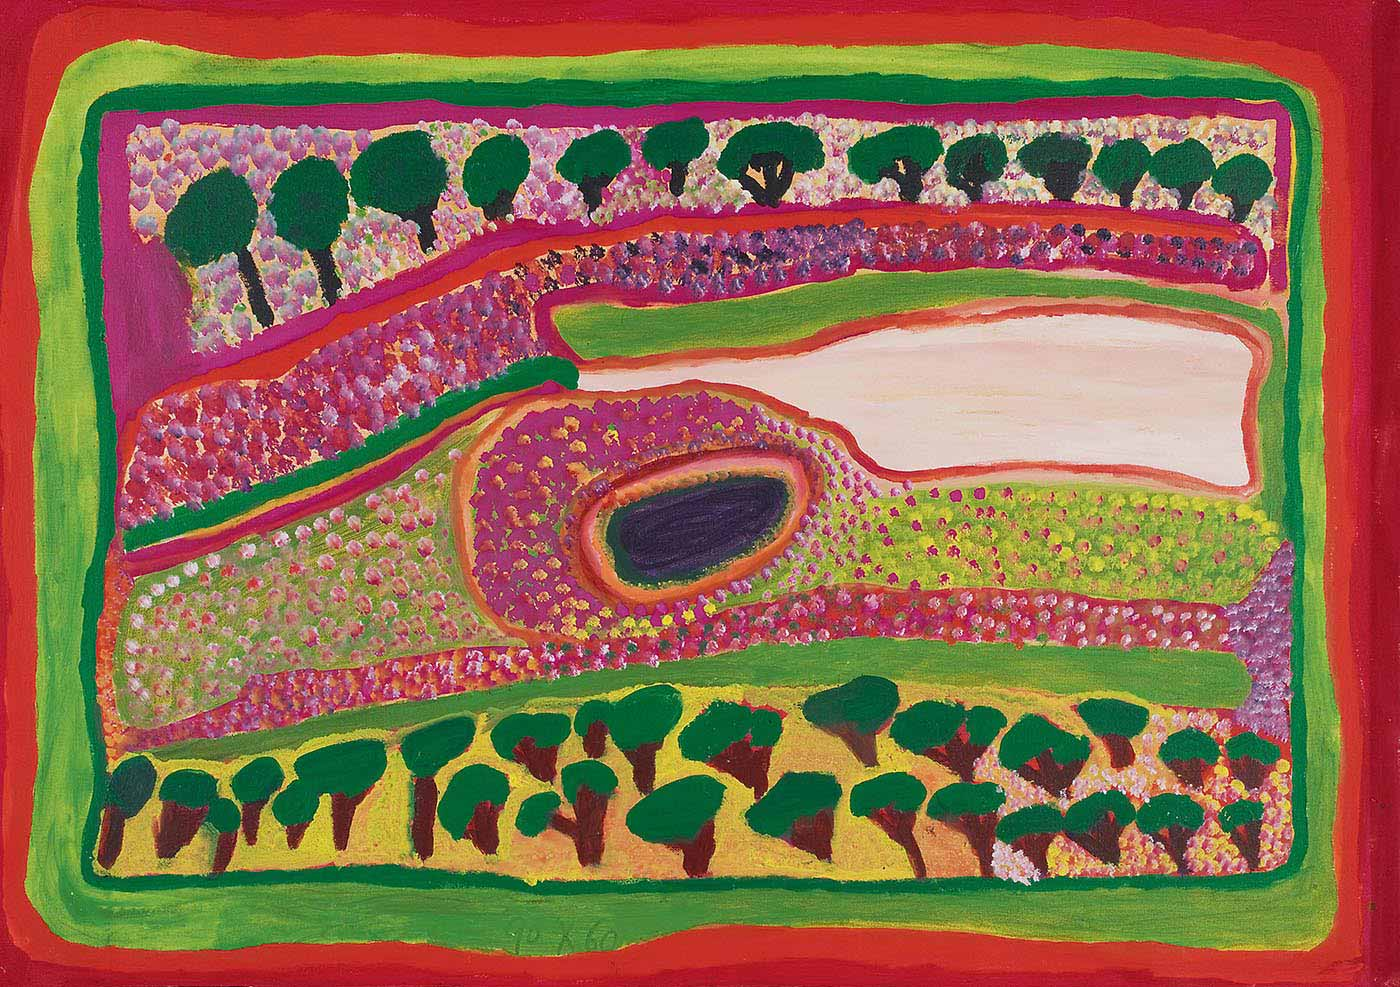 A painting on canvas with rows of trees with brown-black trunks and green foliage against a background of pink or yellow-green at the top and bottom. In the centre there is a dark purple oval shape edged with several bands of colour and surrounded by outlined shapes filled with dots of magenta, red, green, lime, black and white. To the right of the purple oval is a pale peach coloured area. The edge of the painting has multiple borders in red, orange, lime and green. - click to view larger image